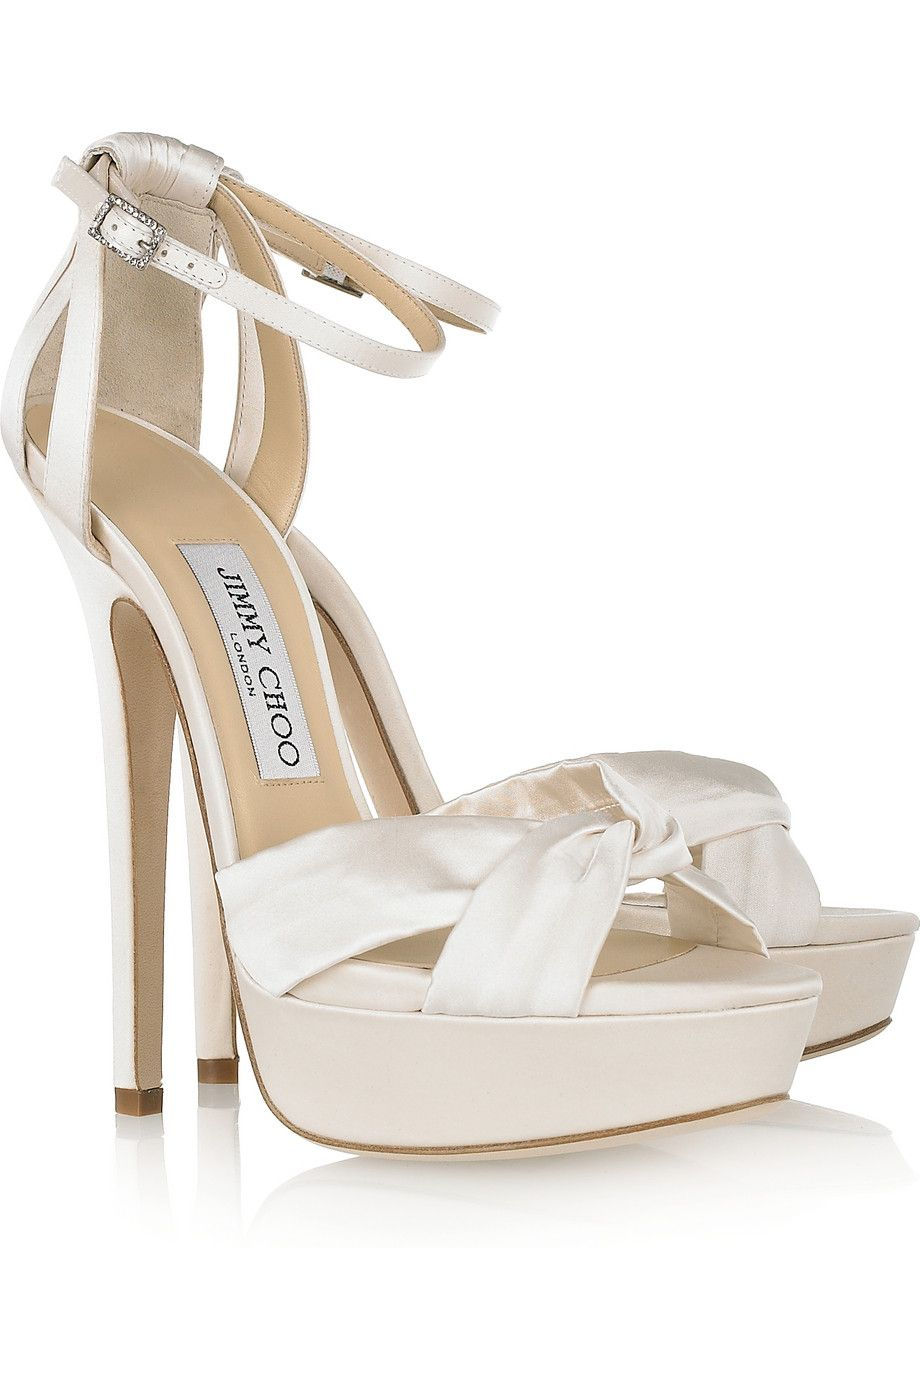 Clothing | Sale up to 70% off | THE OUTNET. Platform Bridal ShoesPeep ...